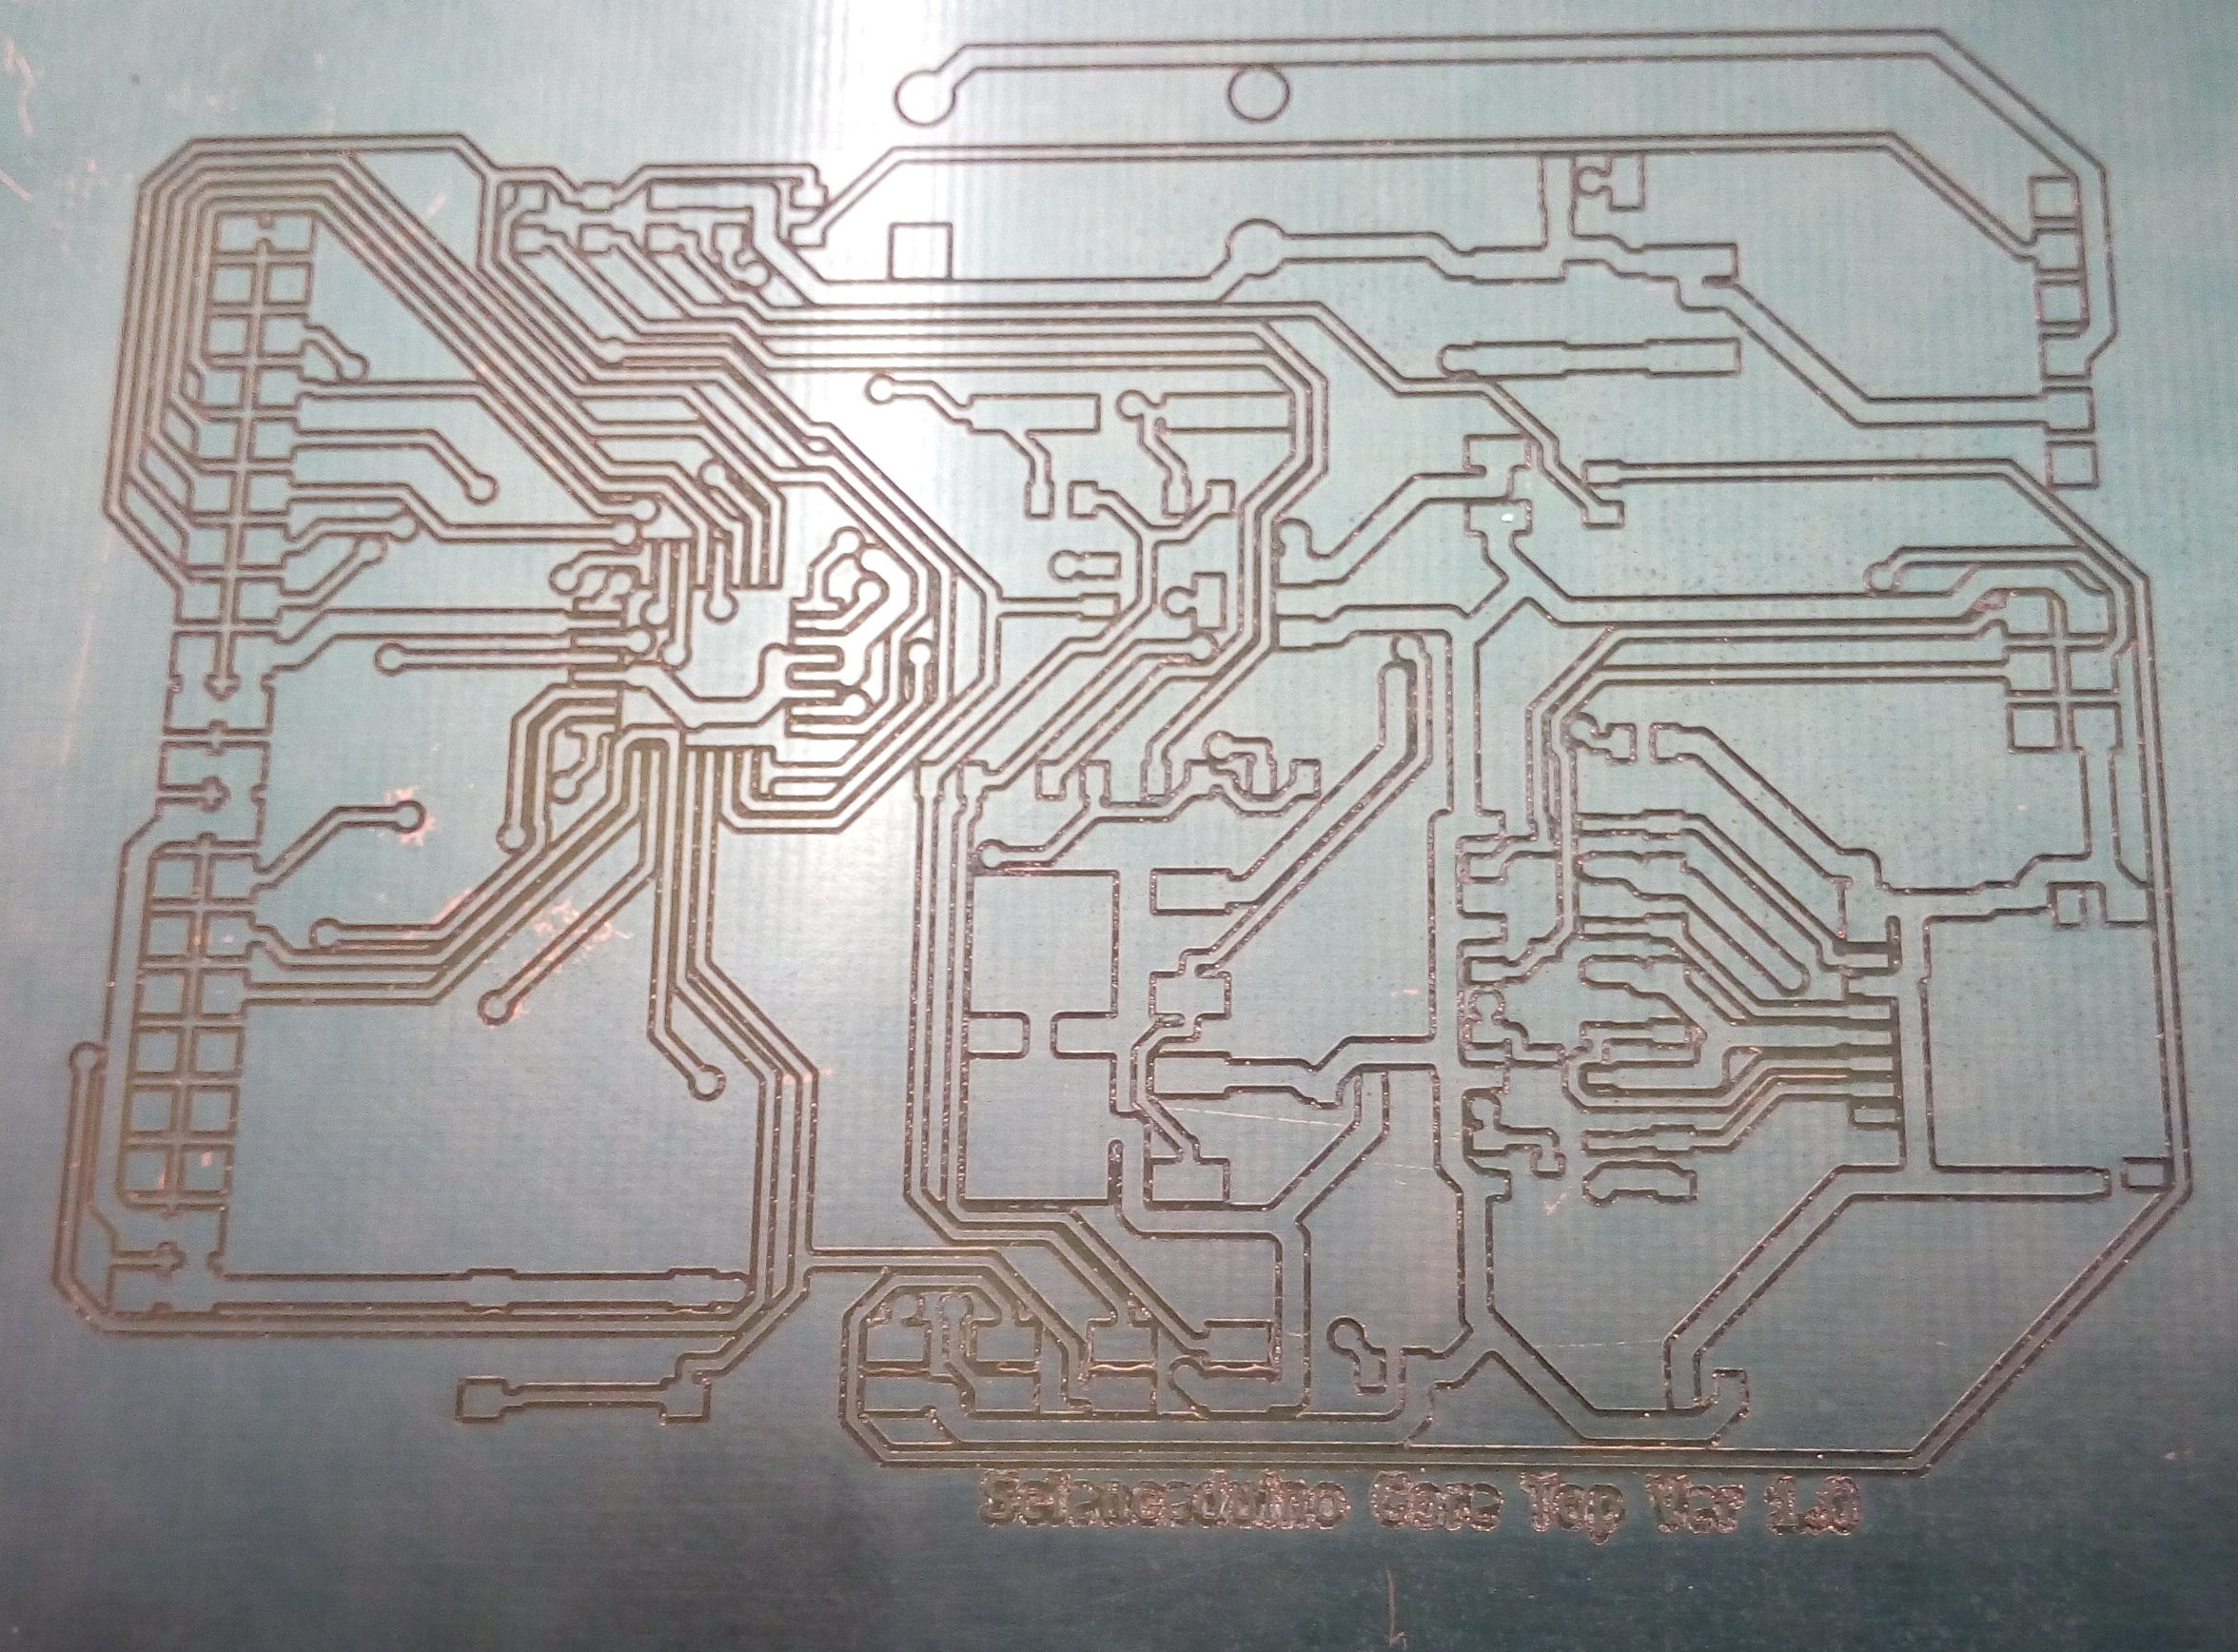 CNC Router Test PCB Made | Computer Science Blog